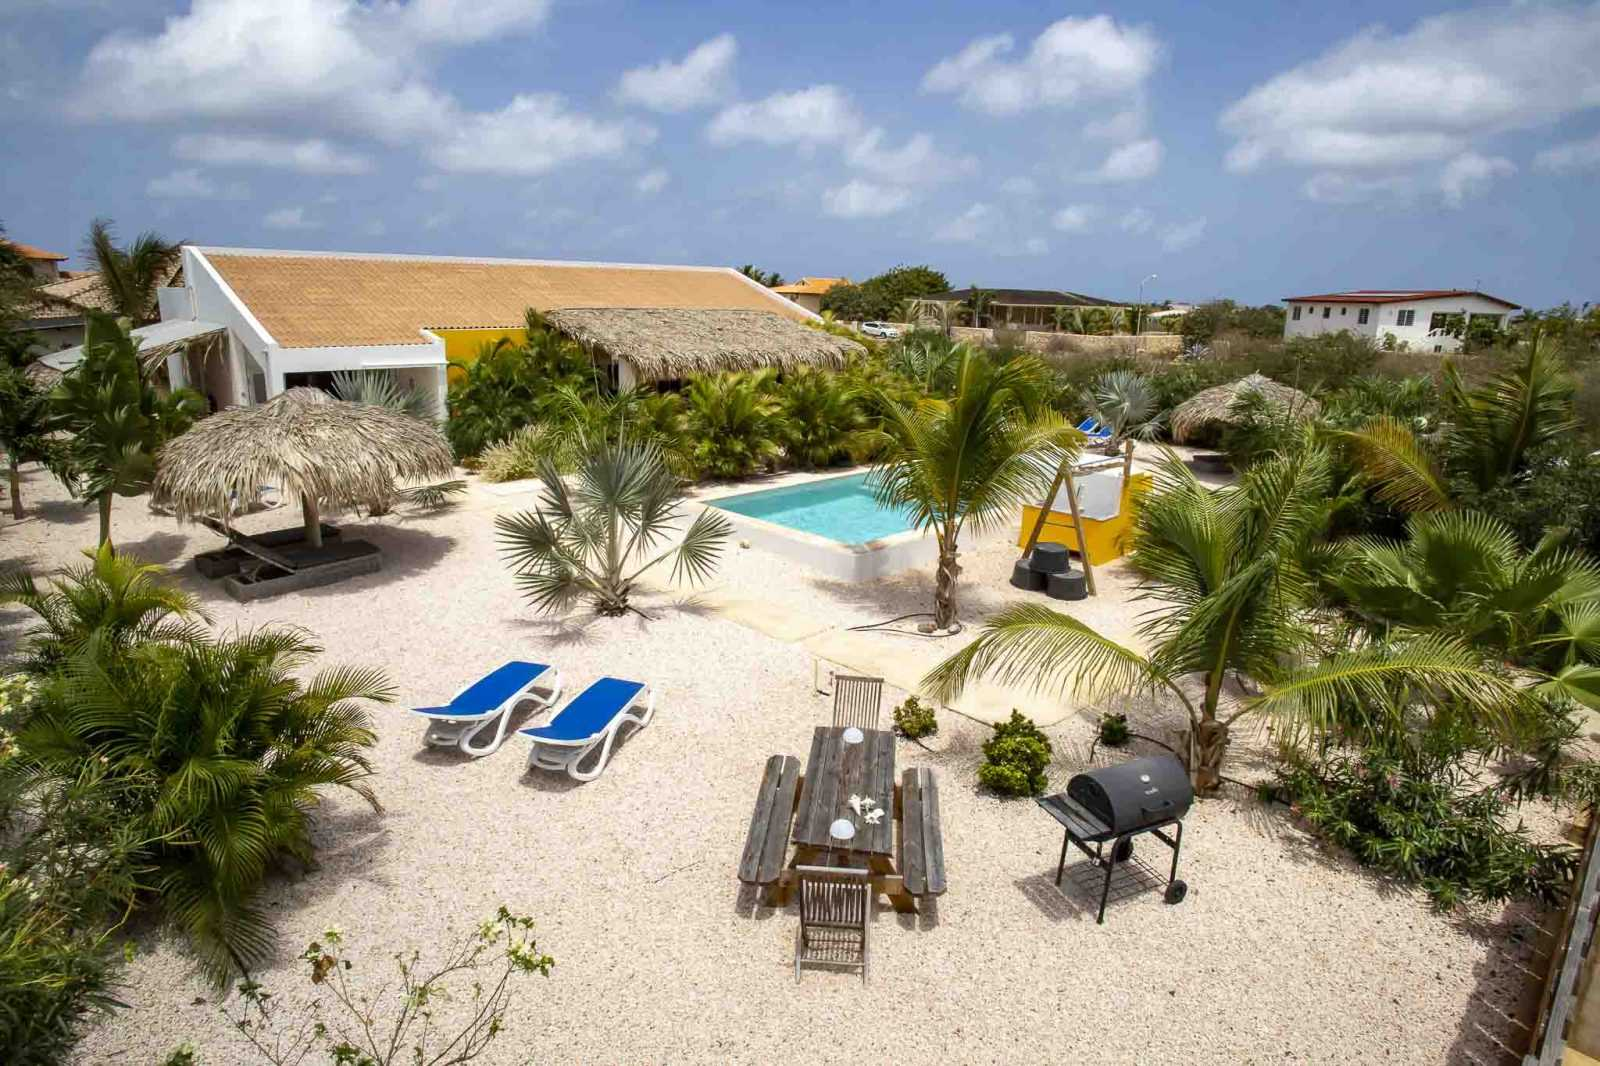 Luxury Villa Apartments for rent Bonaire - Kas Wahoo